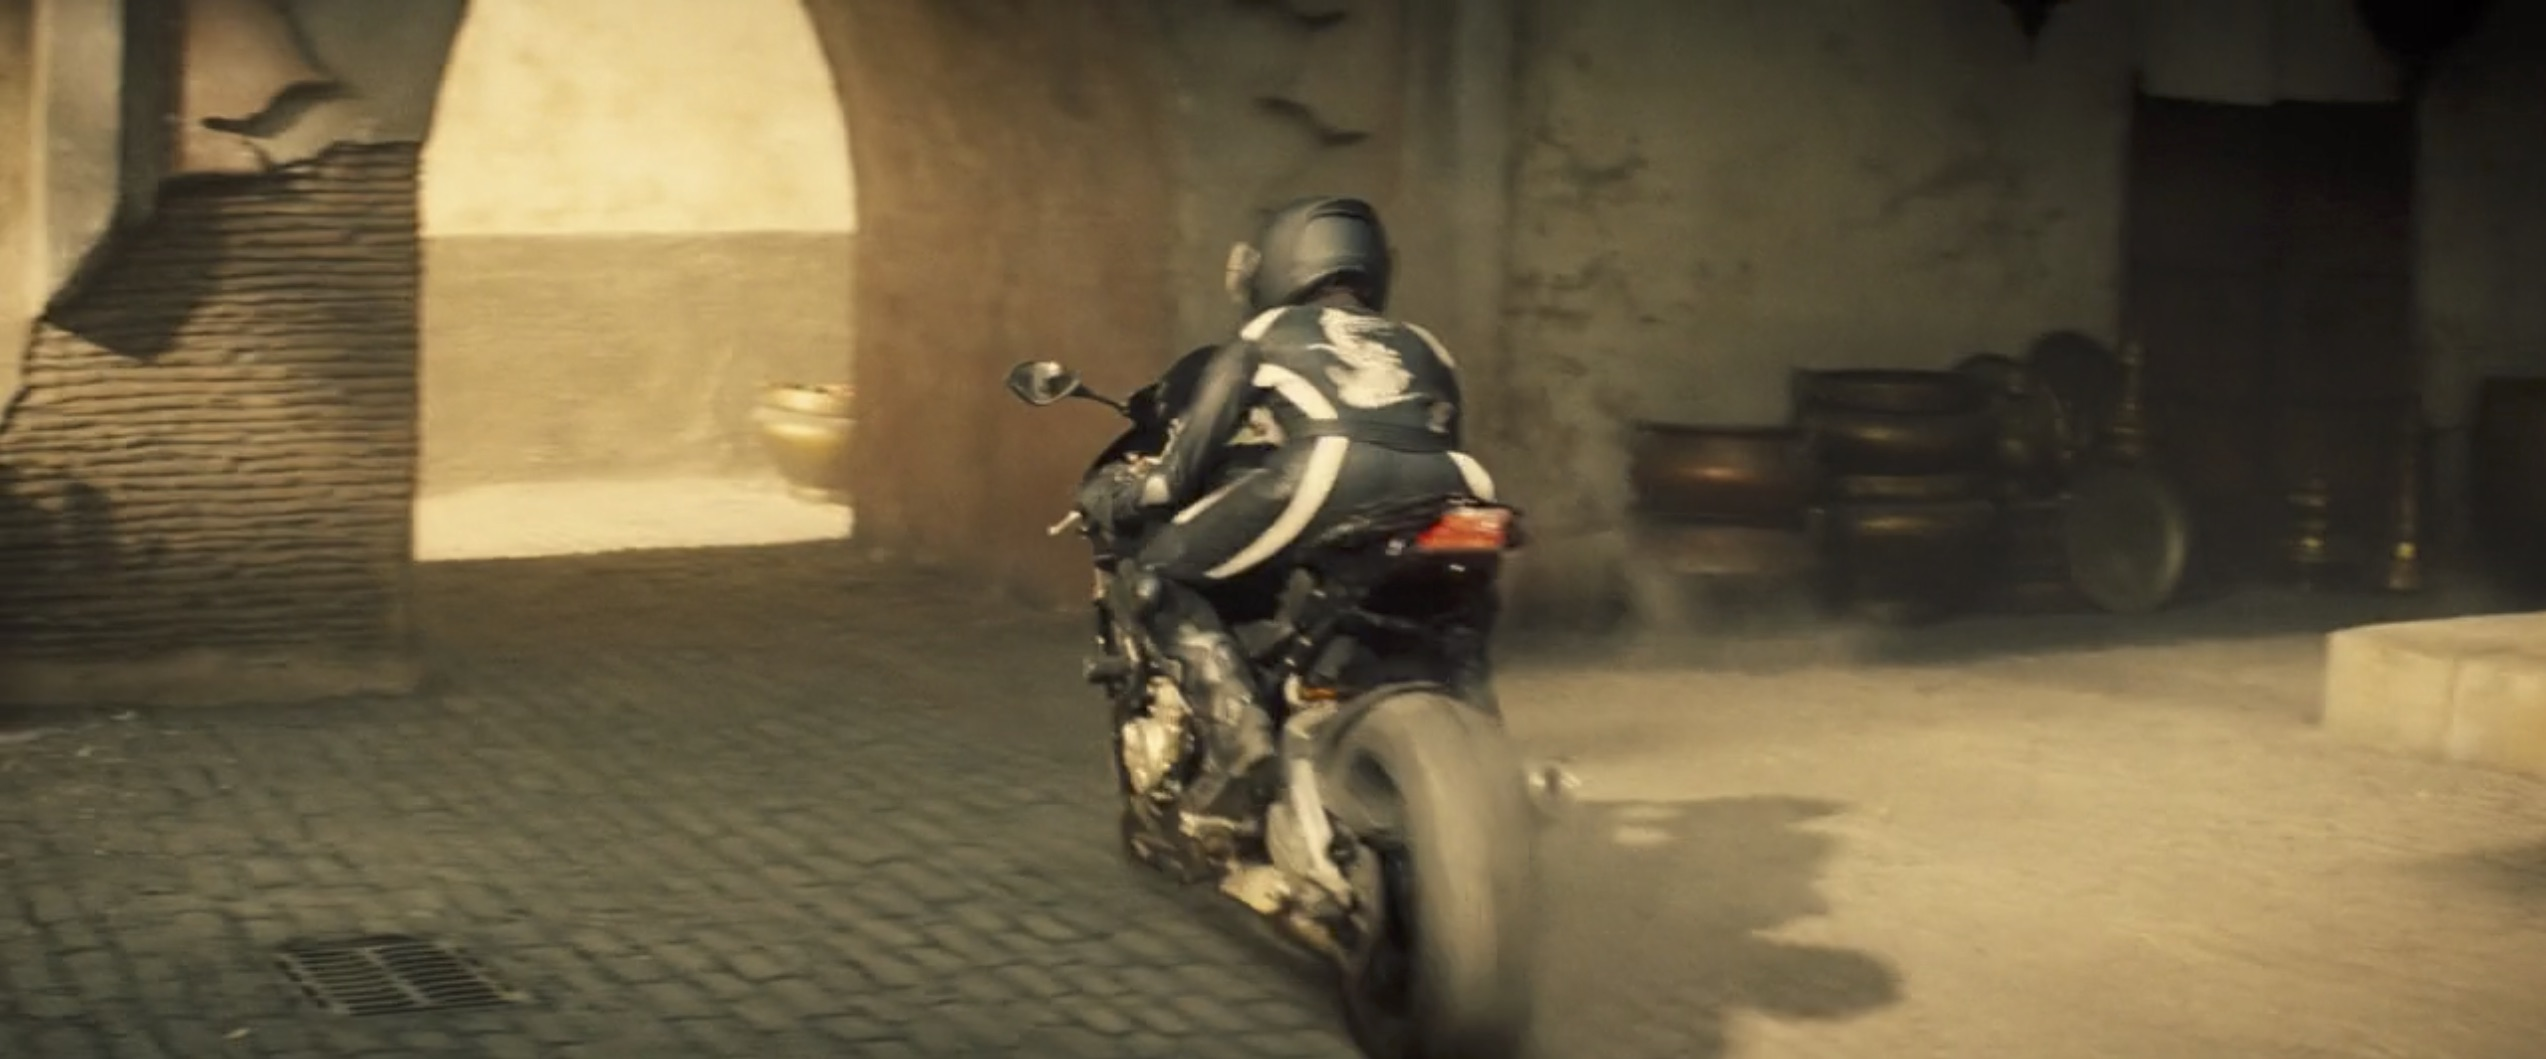 Mission Impossible: Rogue Nation motorcycle through city